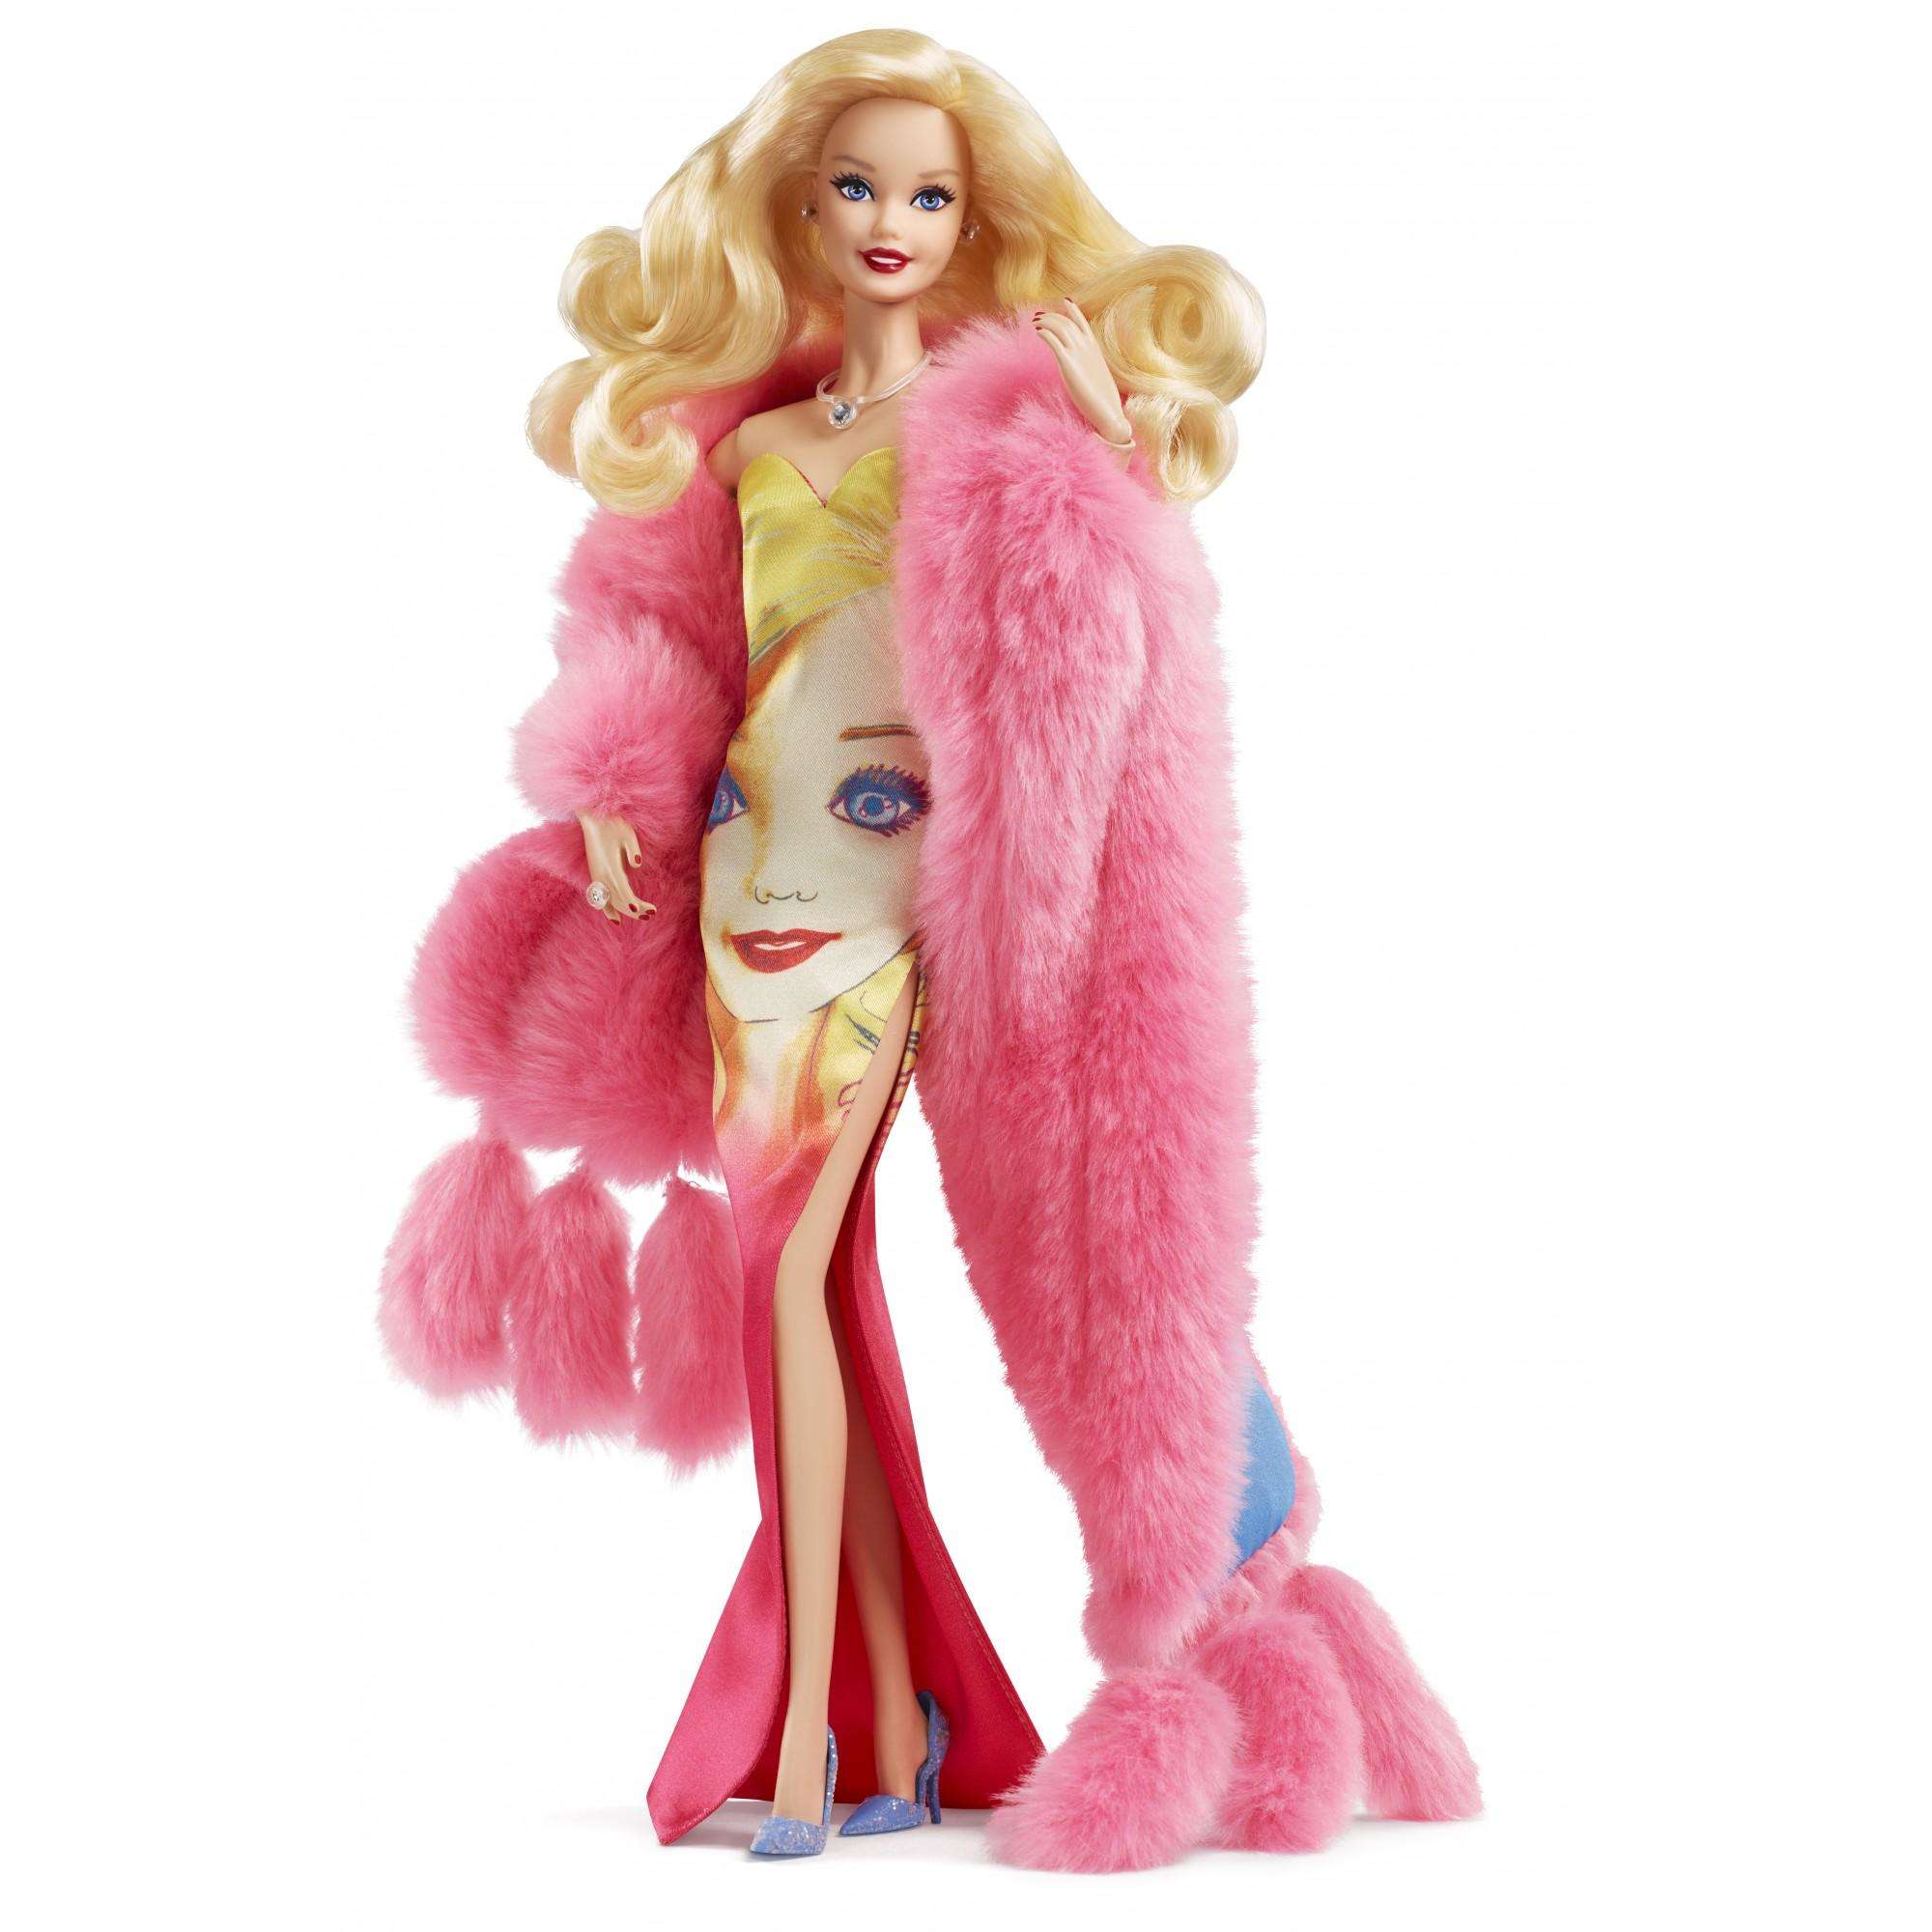 Barbie Collector Andy Warhol Doll by Barbie